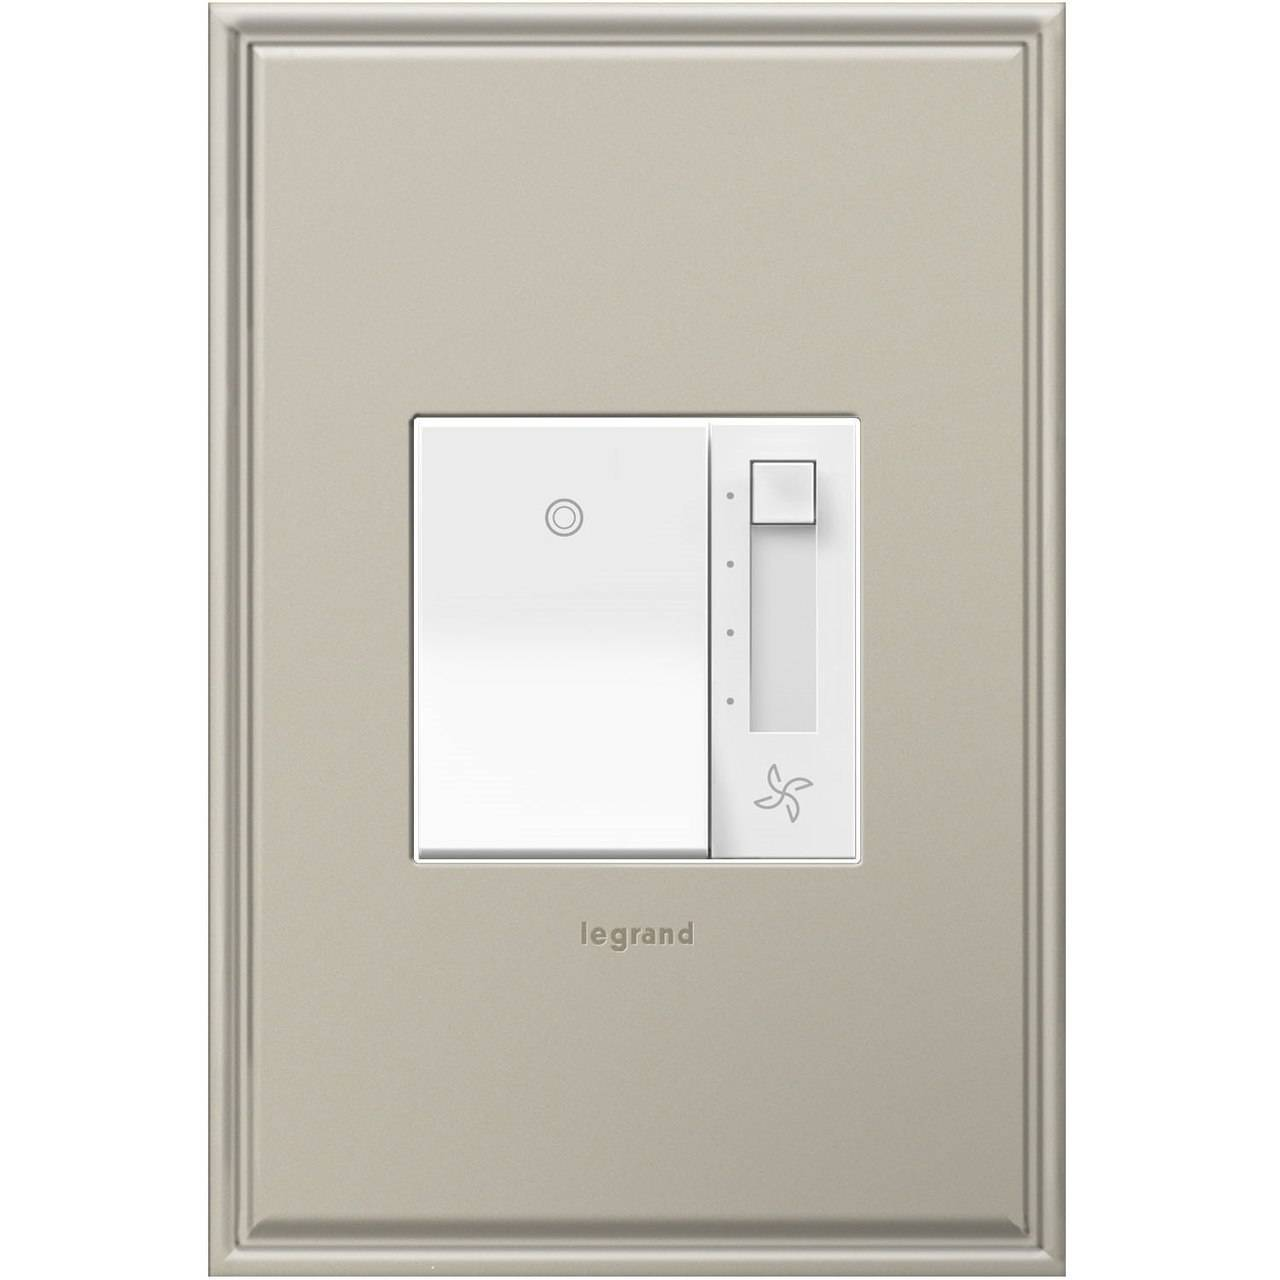 Legrand adorne paddle fan control switch for lighting system